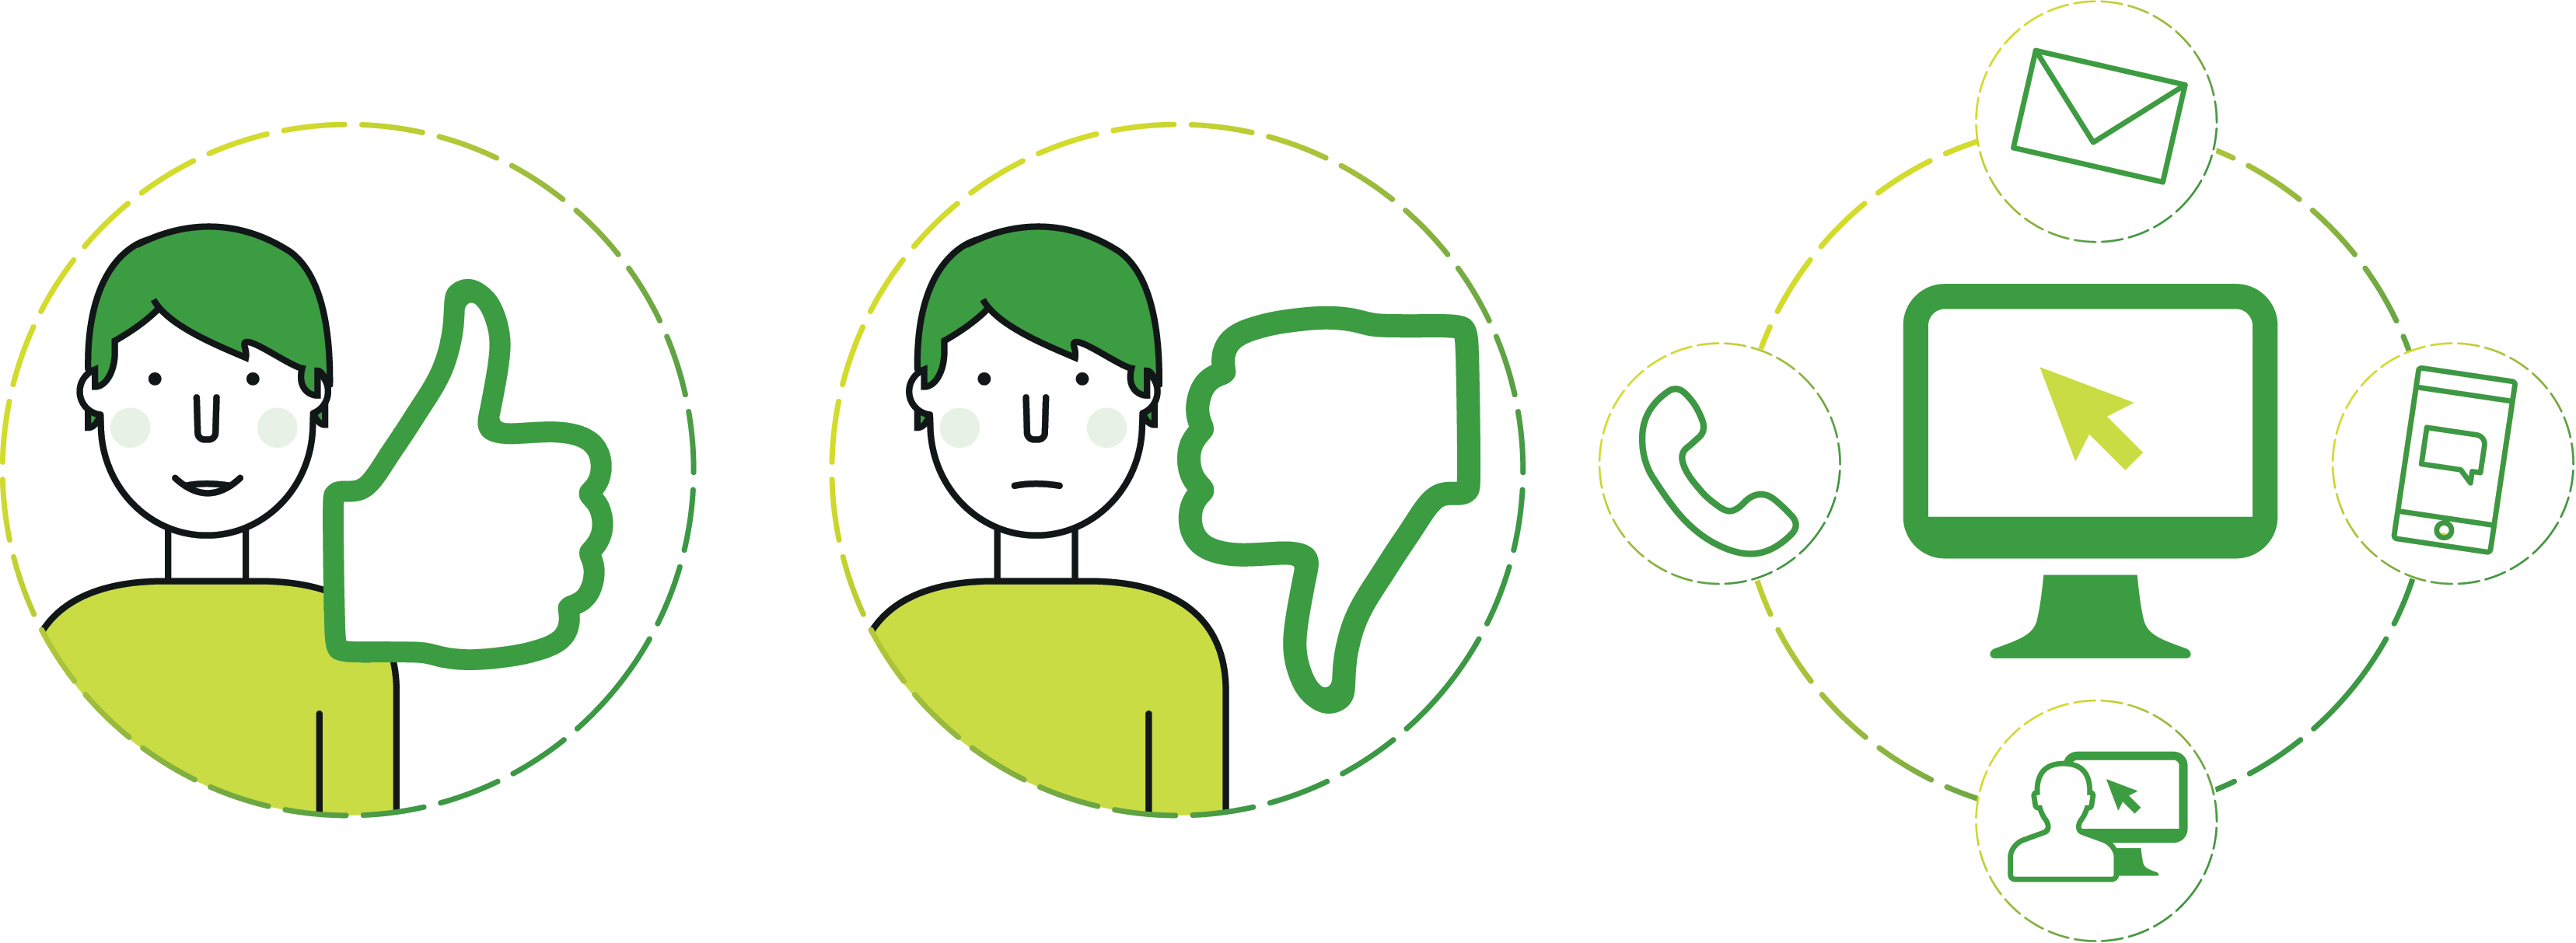 Customer Service The Good The Bad And The Unified